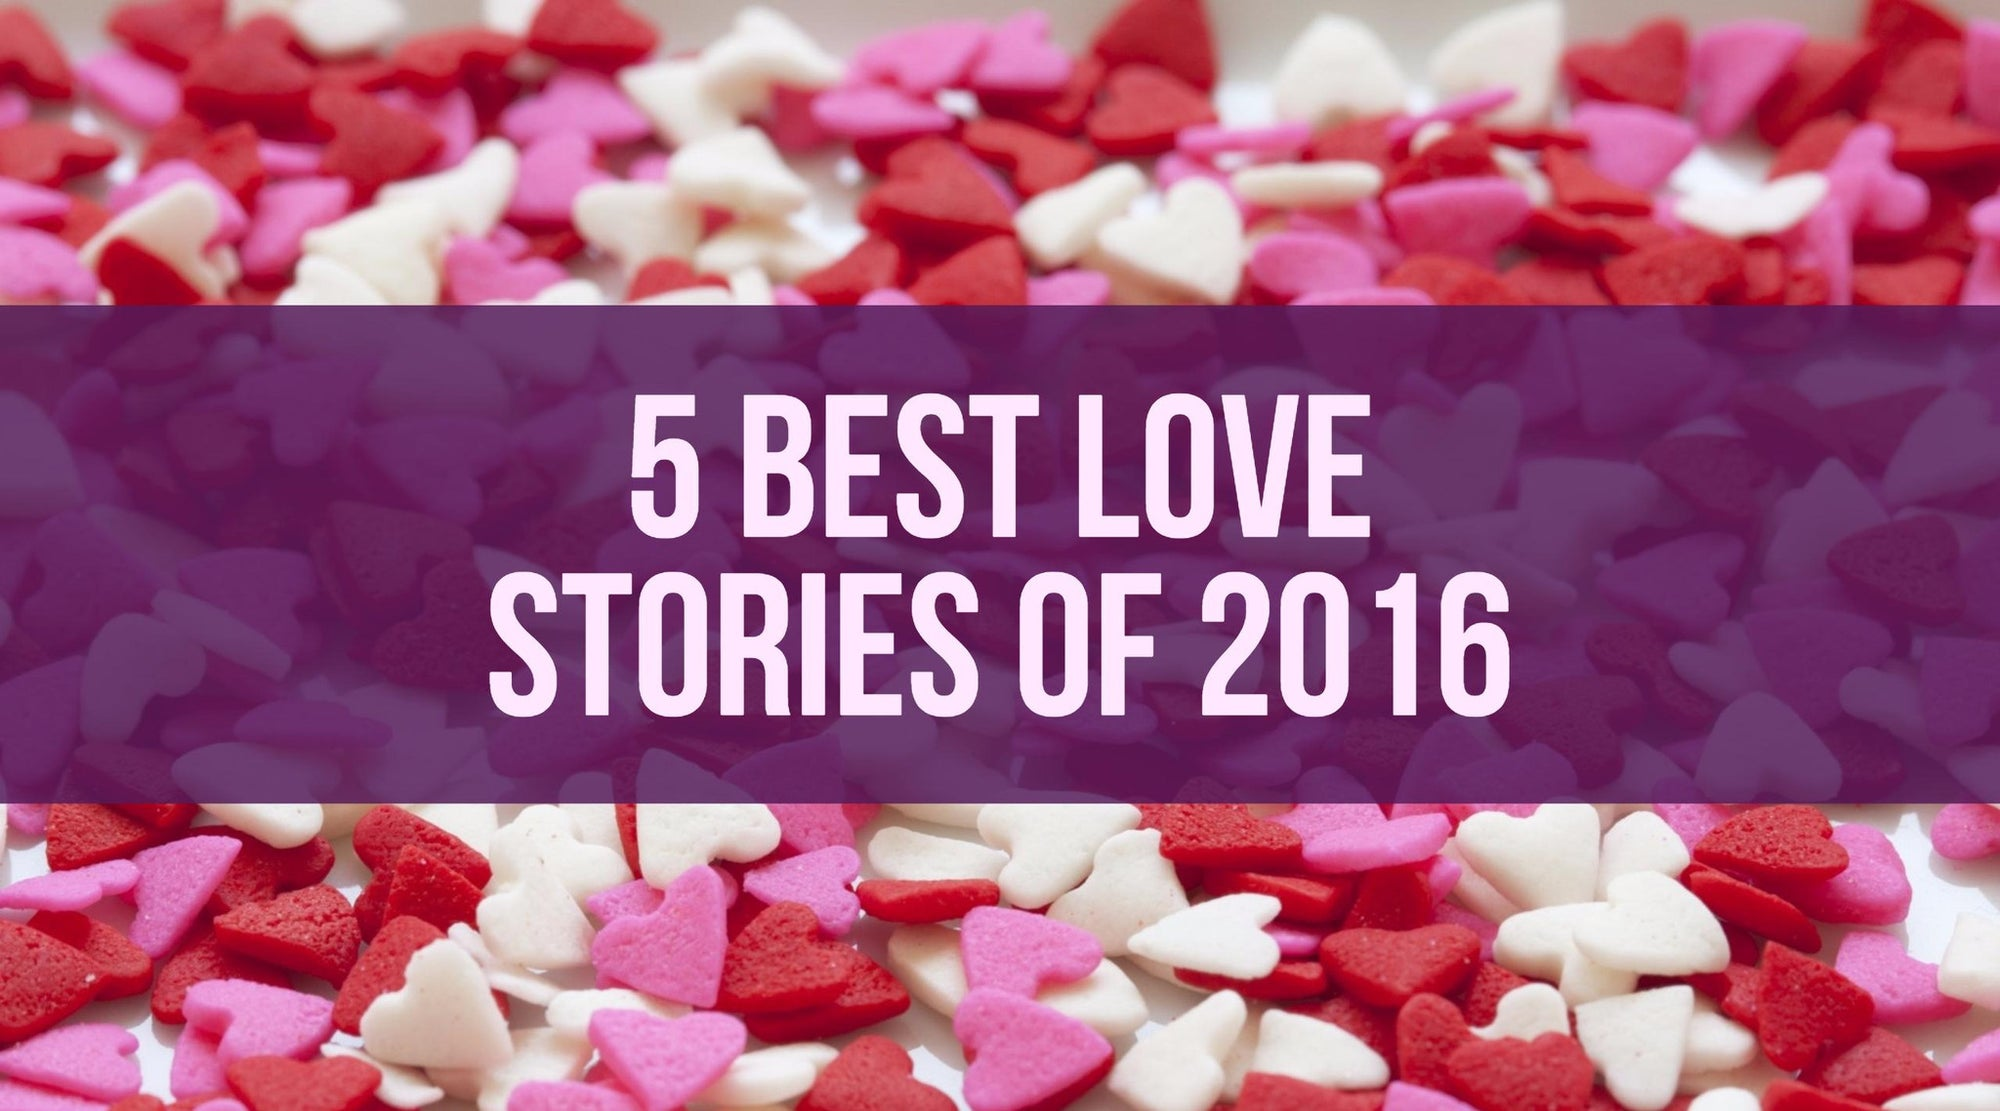 The 5 Best Love Stories of 2016